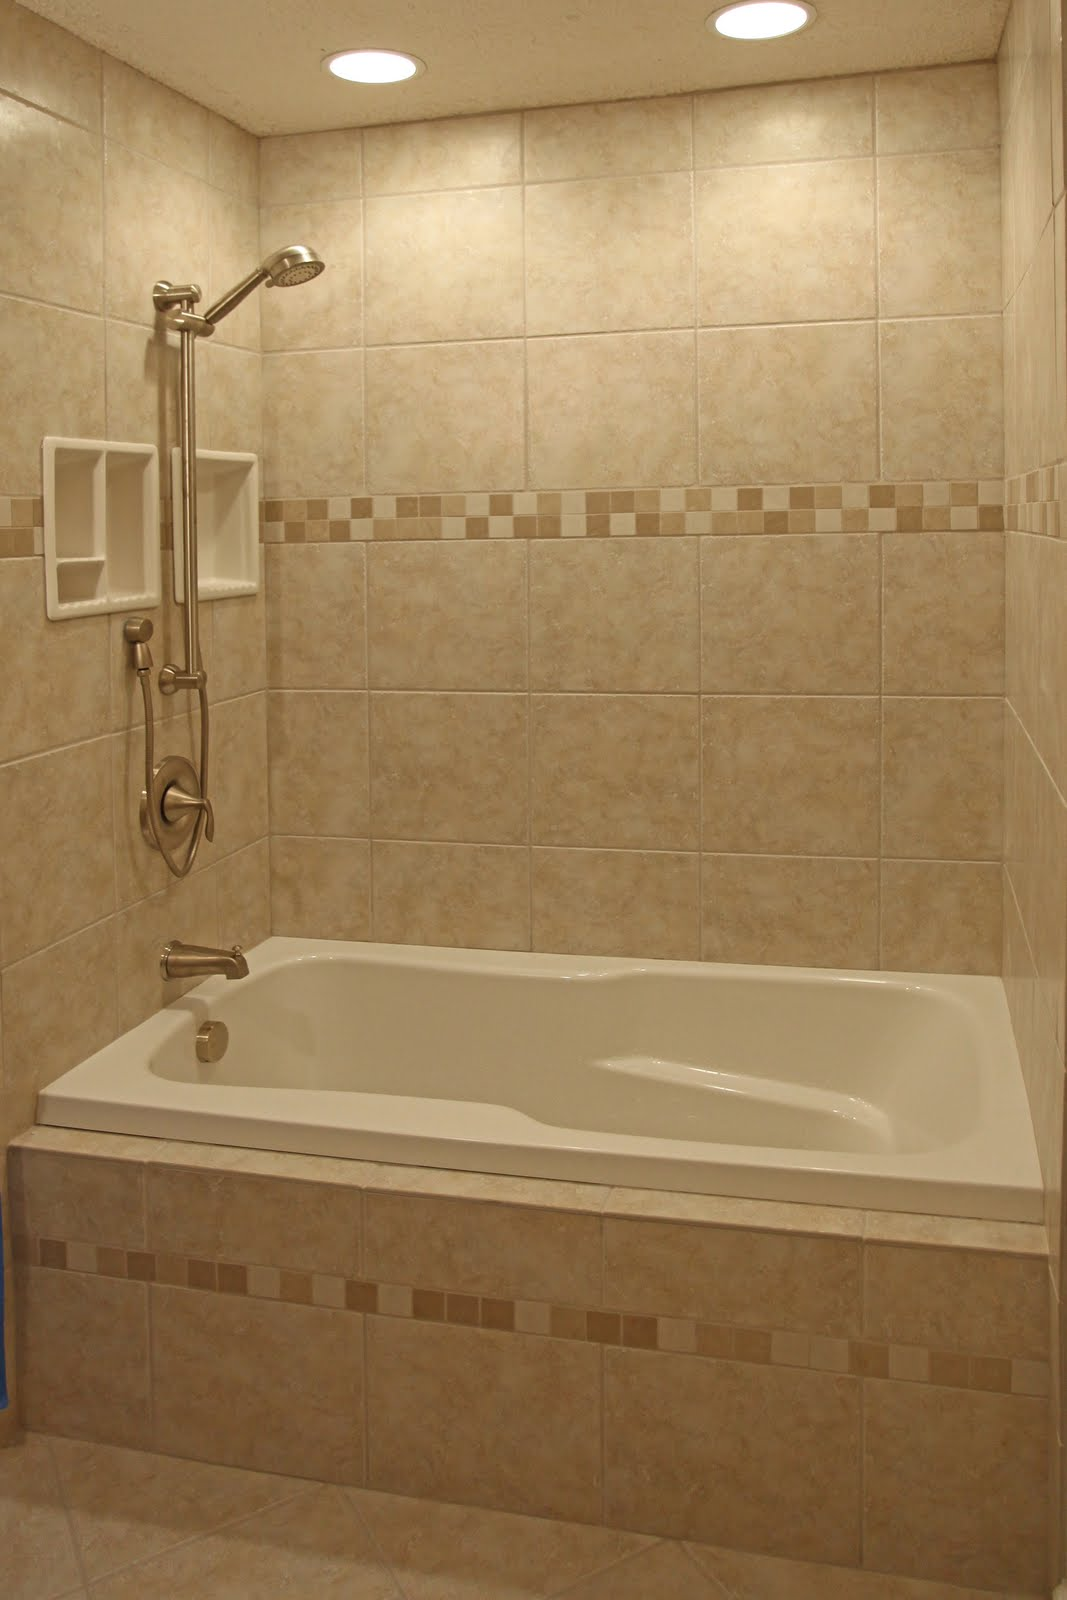 tile-bathroom-shower-design-ideas-ceramic-tile-bathroom-shower-1067x1600